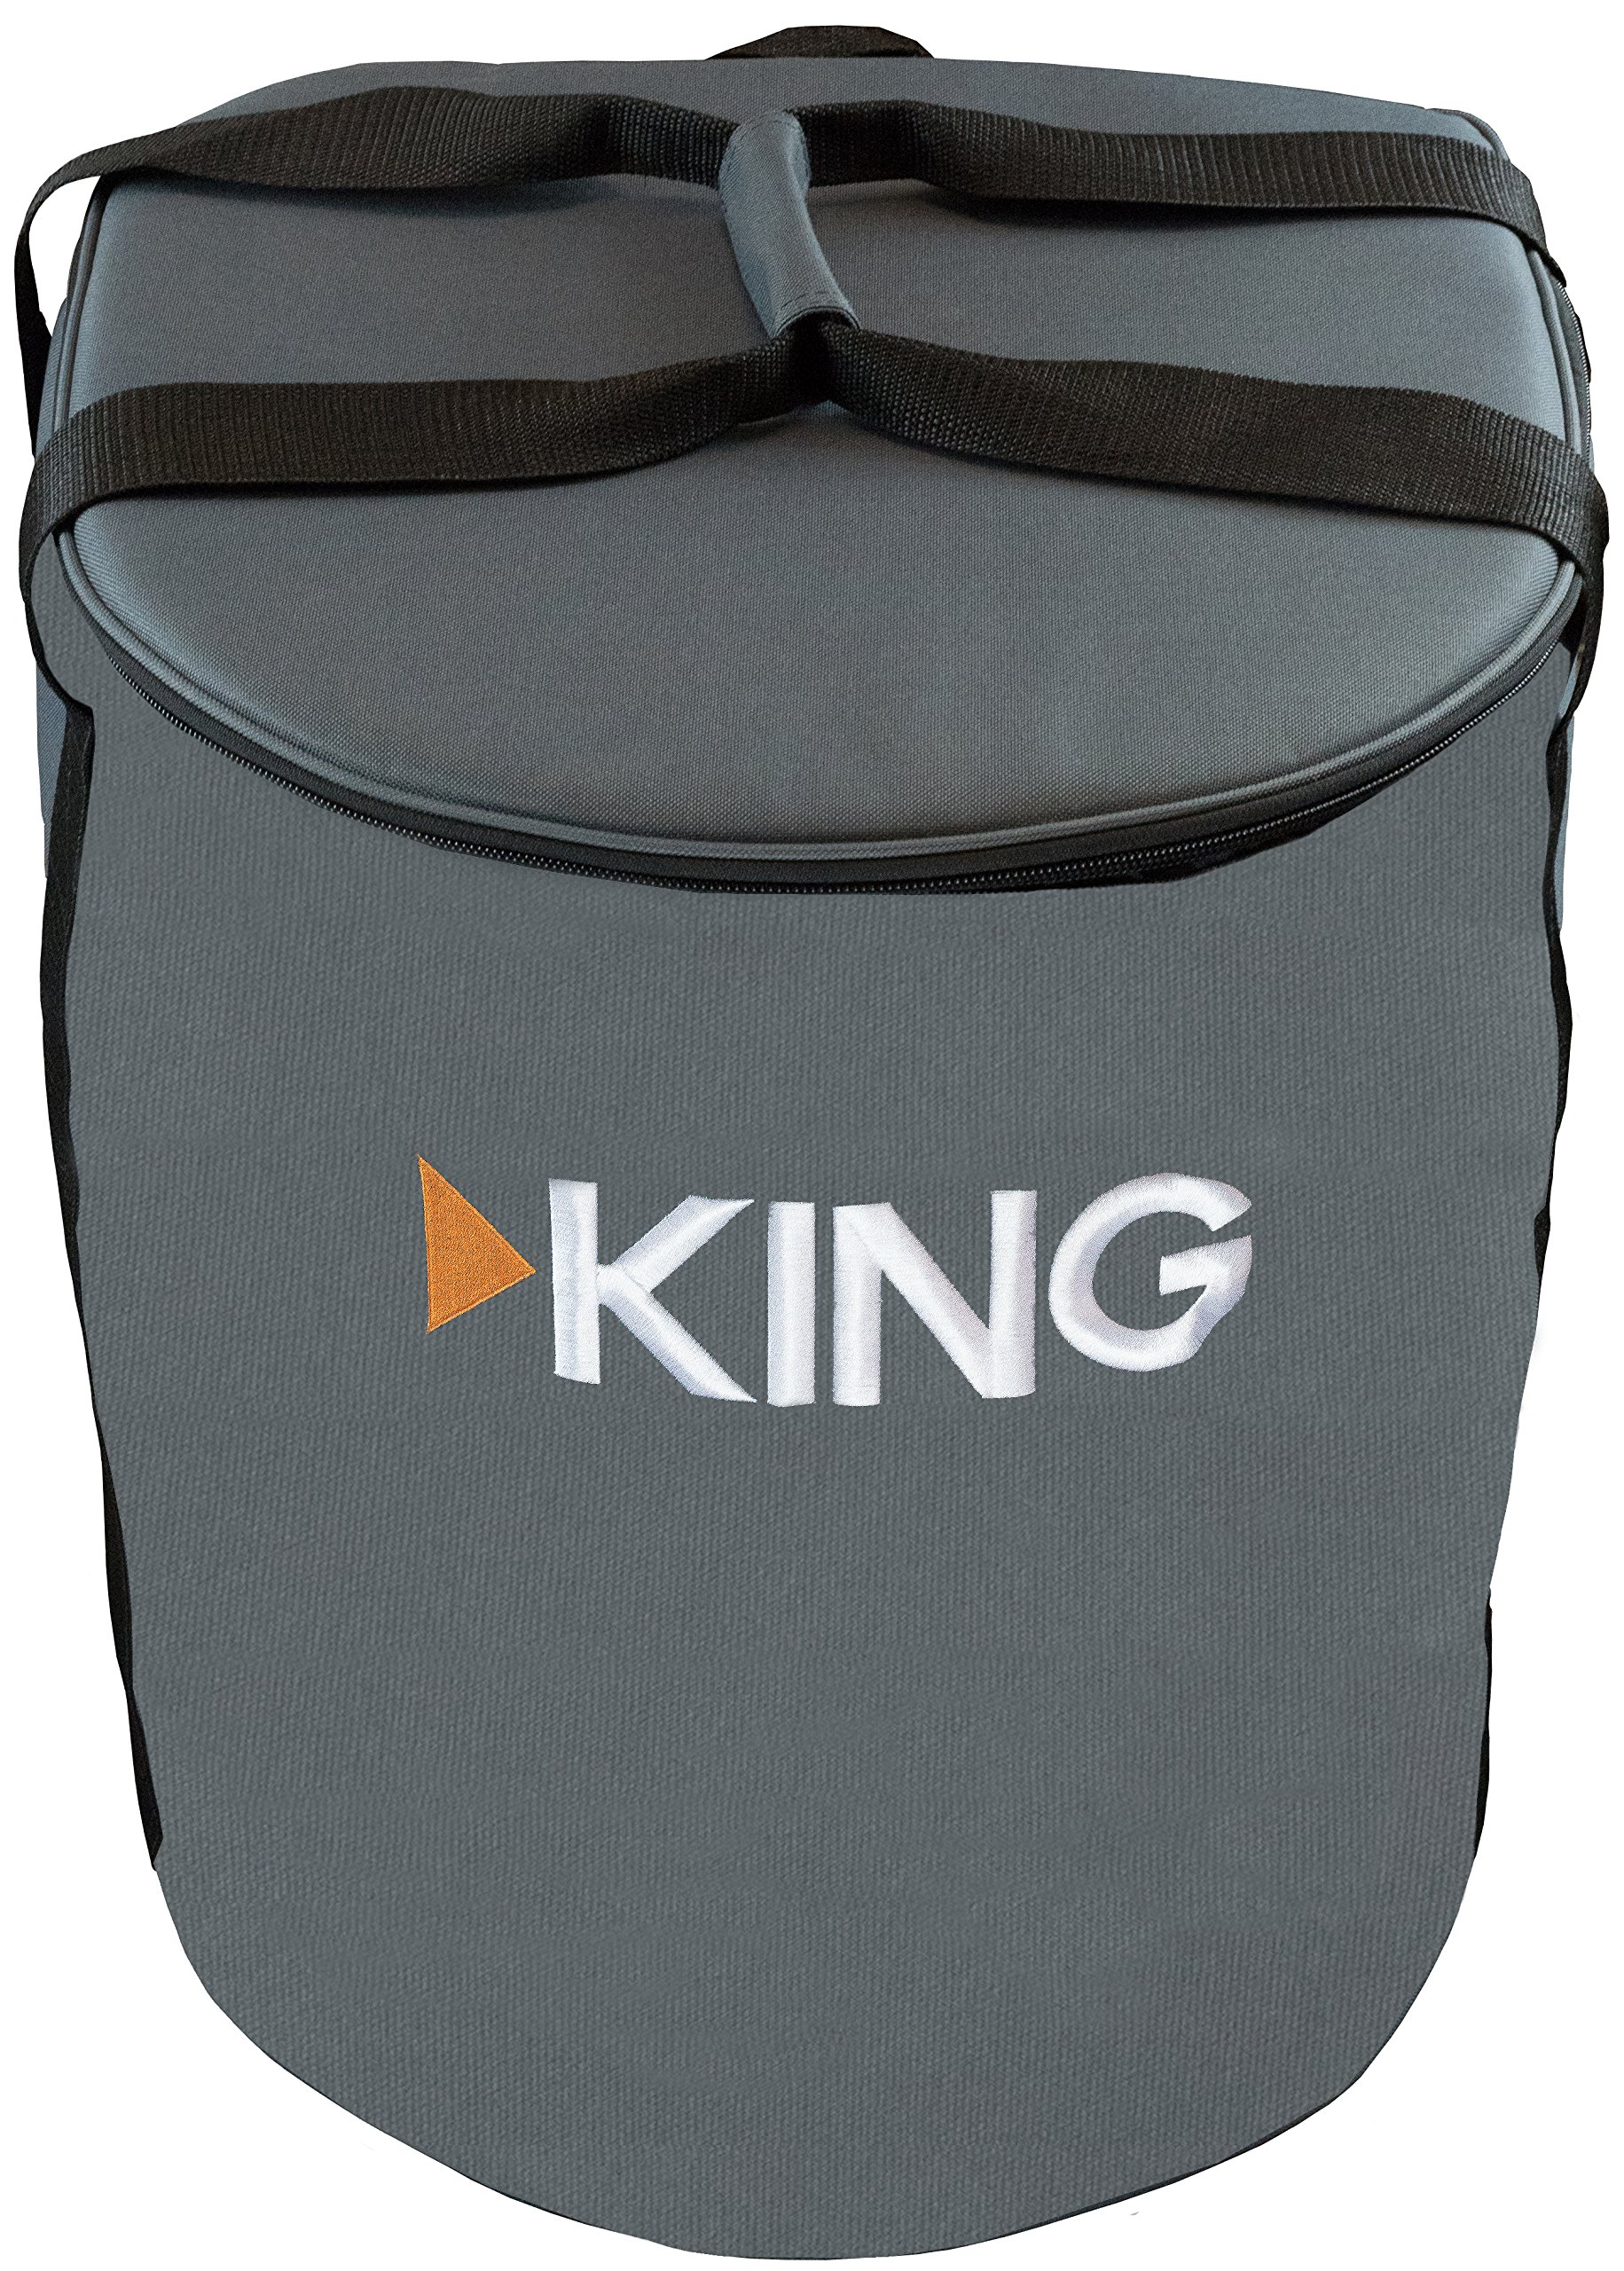 KING CB1000 Carry Bag for Portable Satellite Antenna by KING